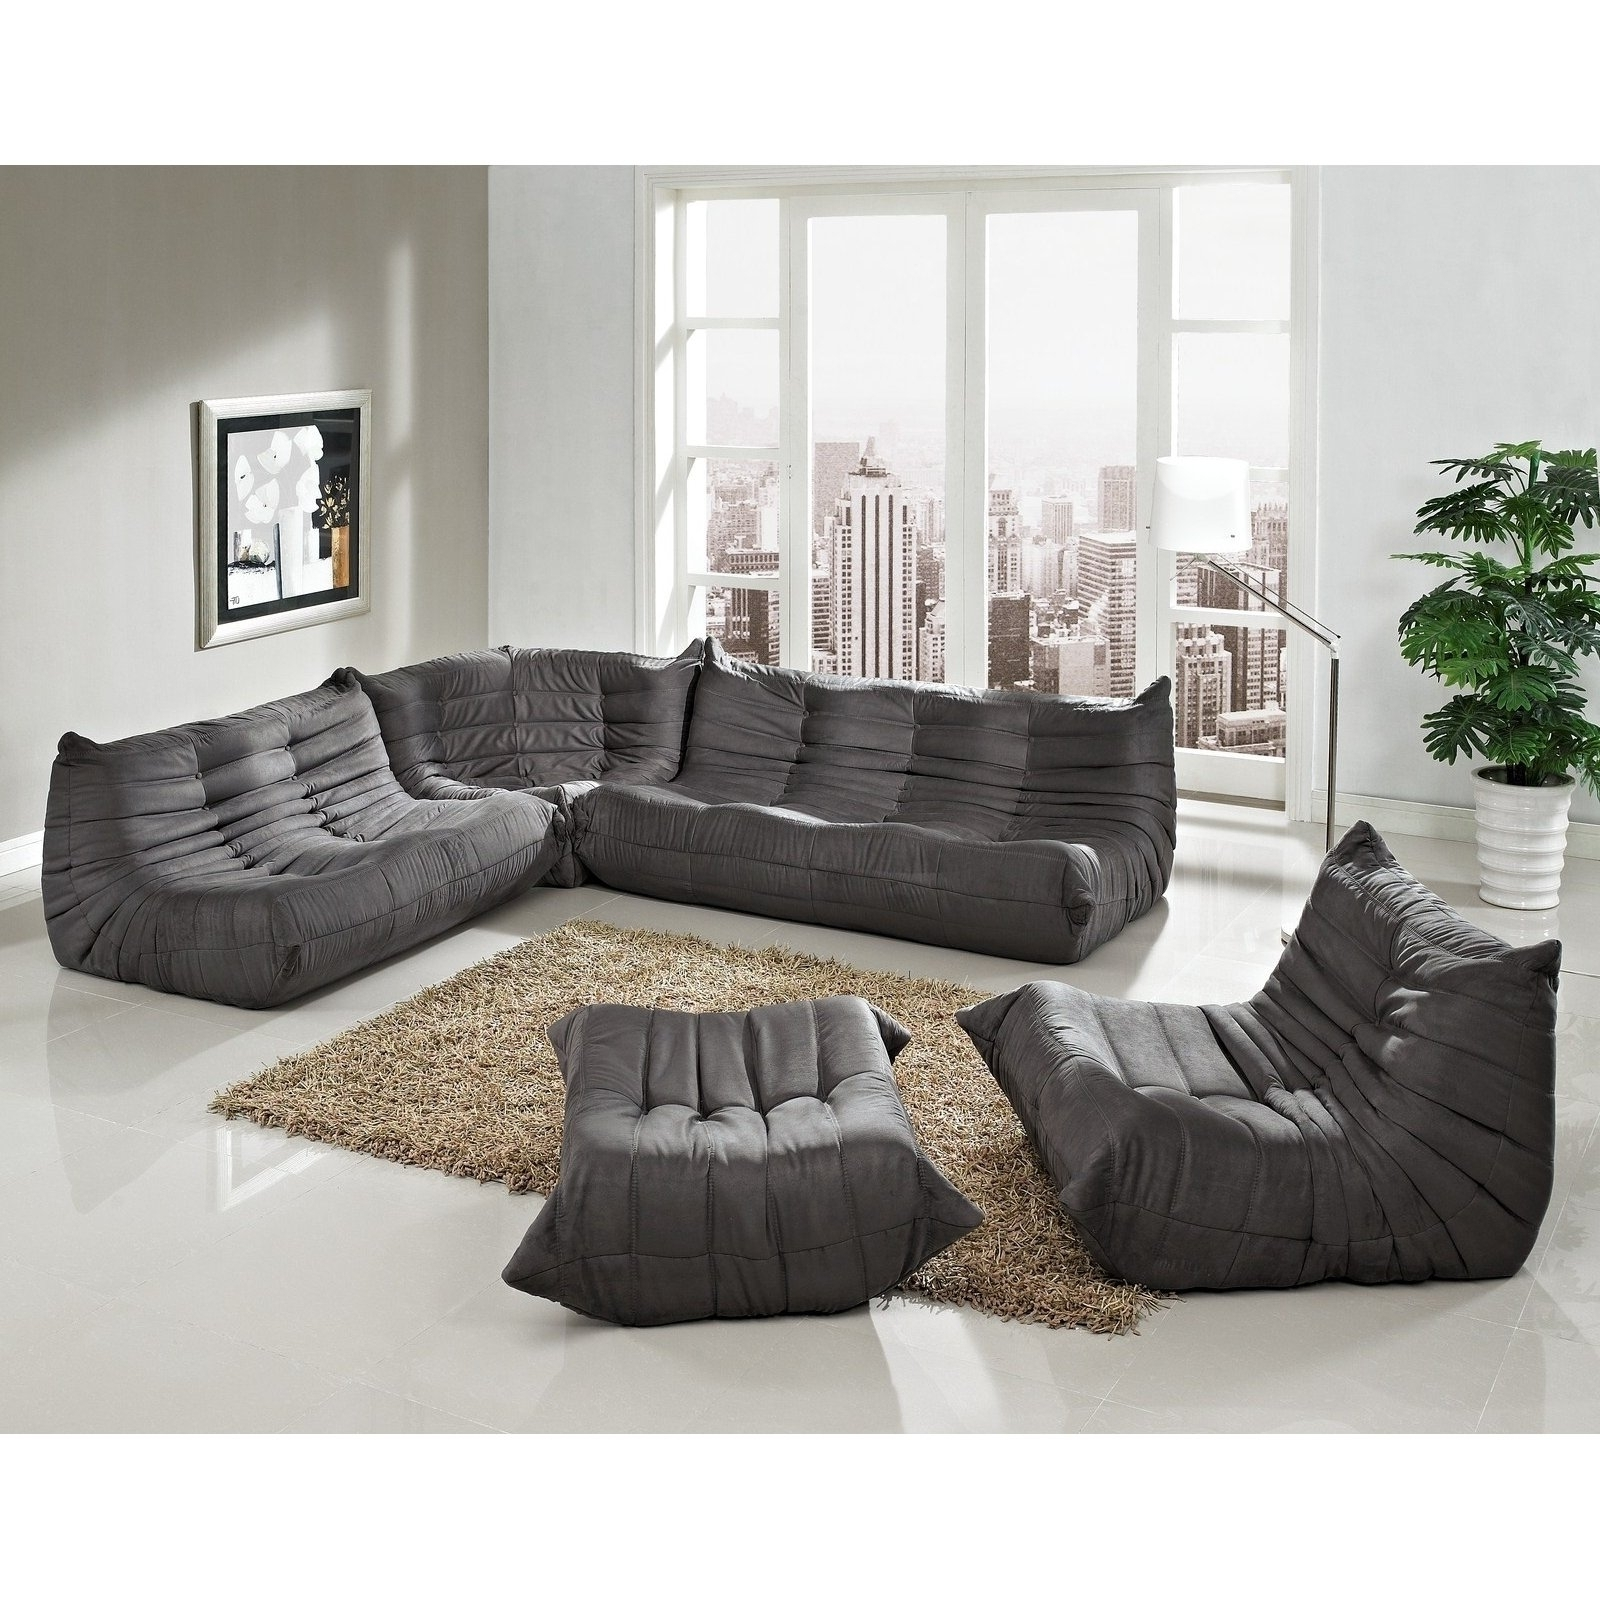 Leather Modular Sectional Sofas Regarding Well Known Living Room : Furniture Living Room Sectional Sofa Modern And (View 12 of 20)